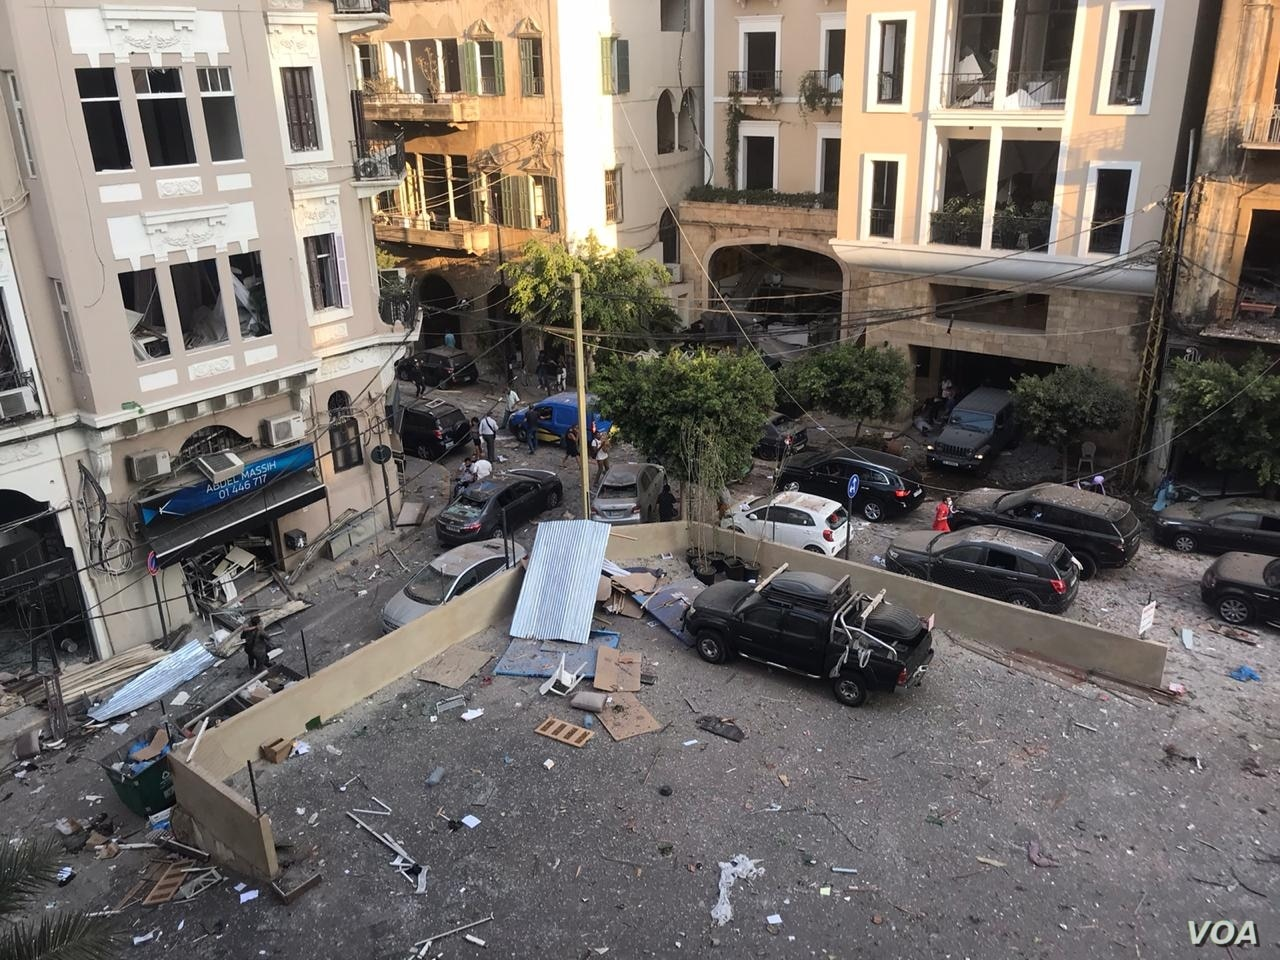 Aftermath of the Port of Beirut explosions, August 4, 2020. (Anchal Vohra/VOA via Wikimedia)